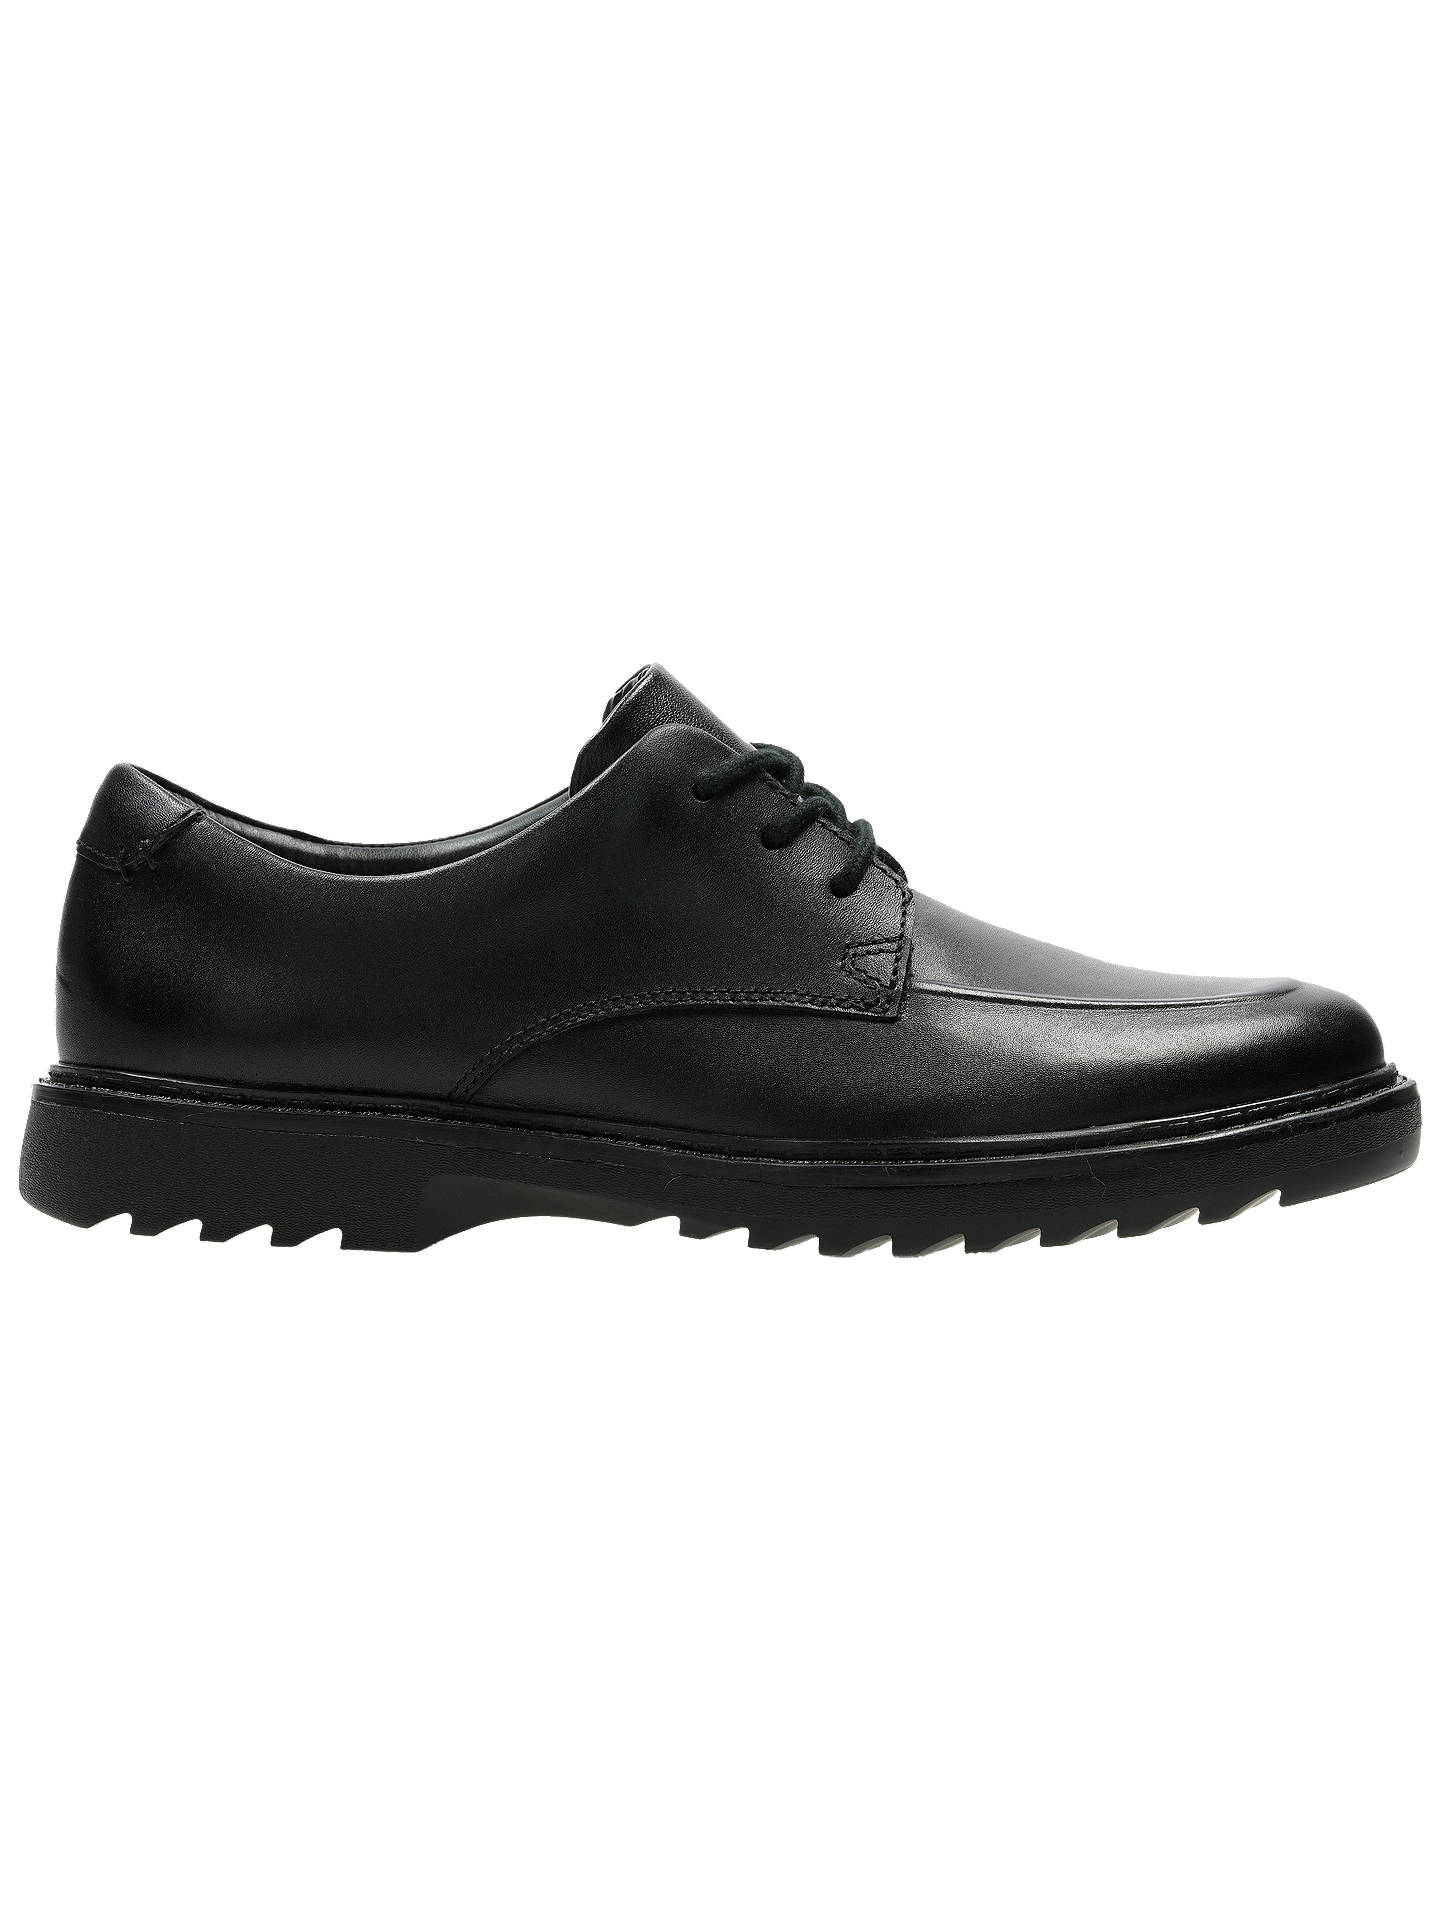 57ee917bf995 Buy Clarks Children's Asher Grove Shoes, Black Leather, 3F Online at  johnlewis. ...